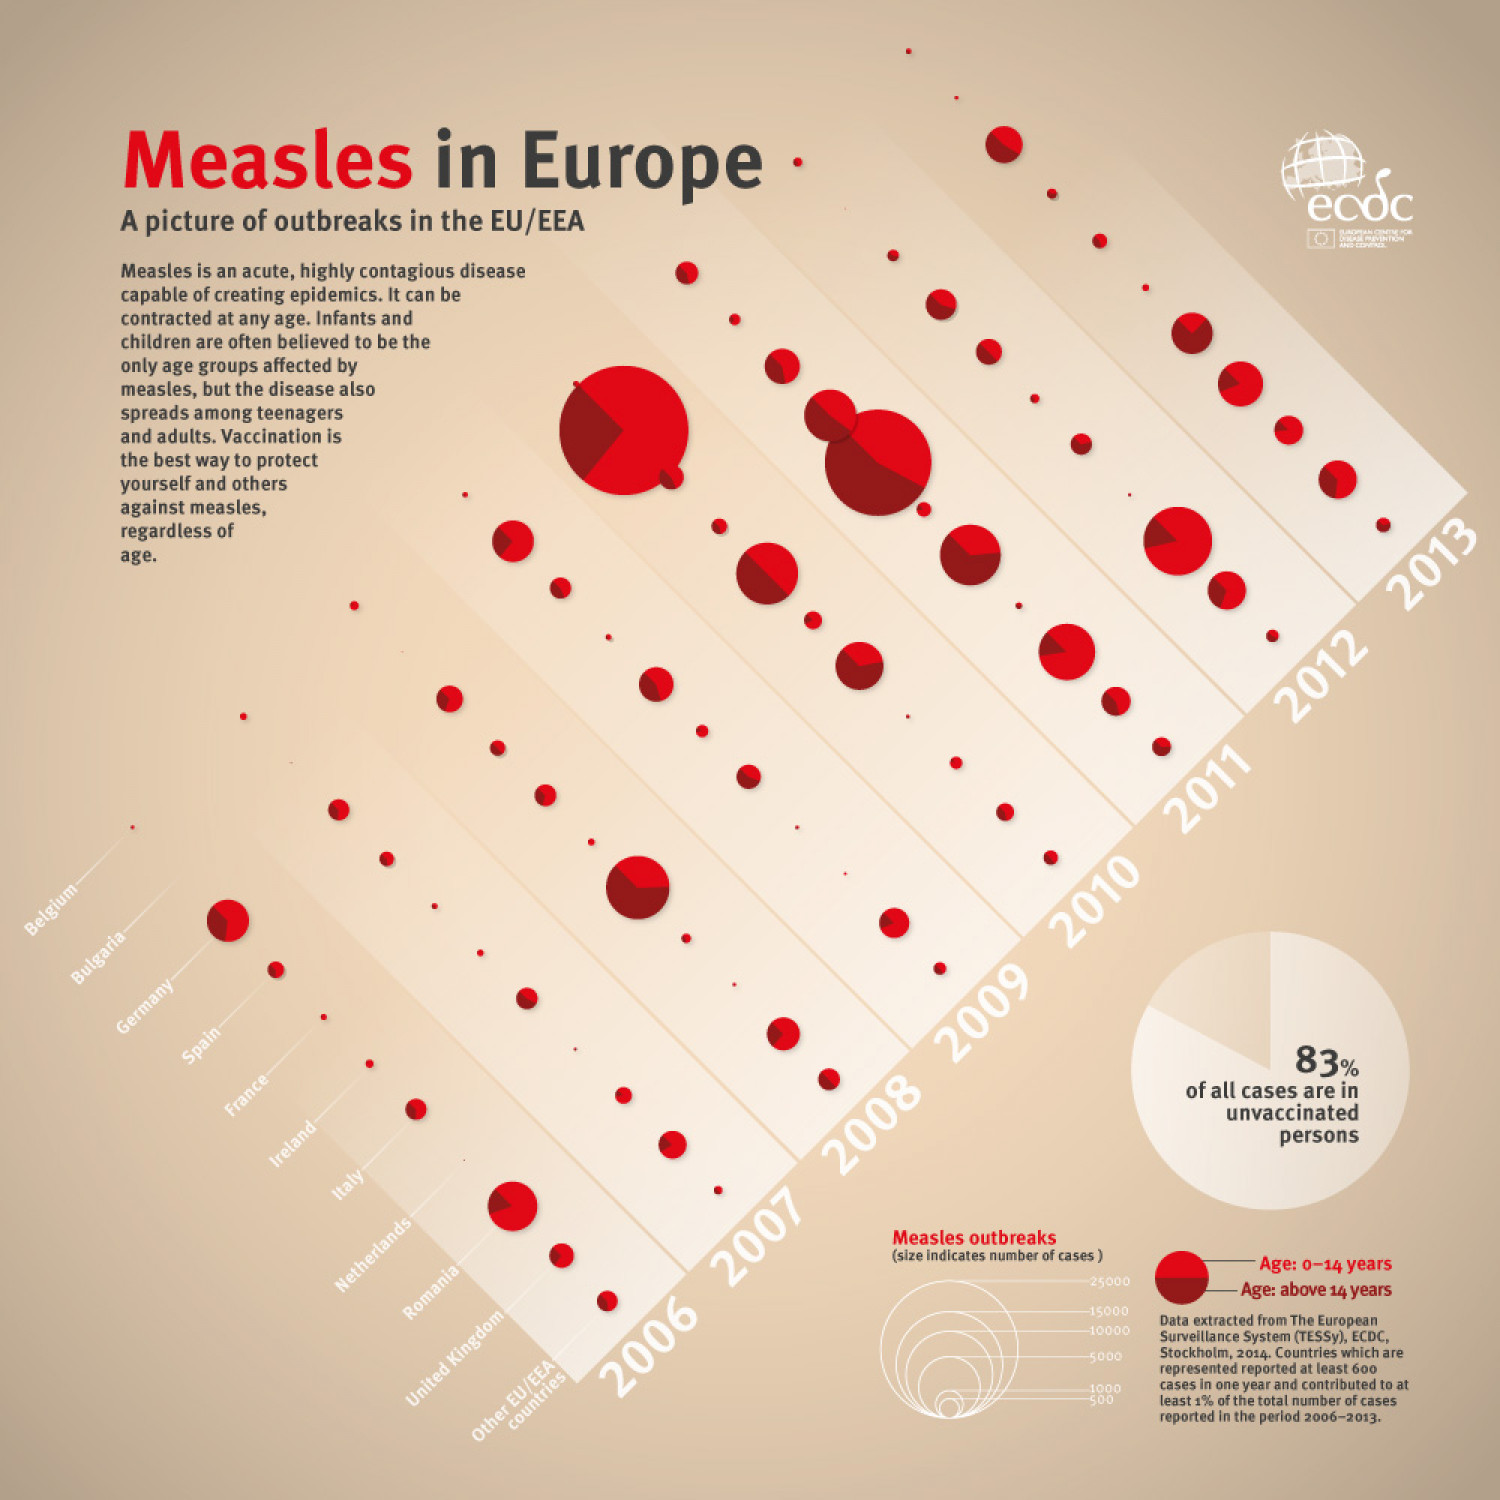 Measles in Europe Infographic